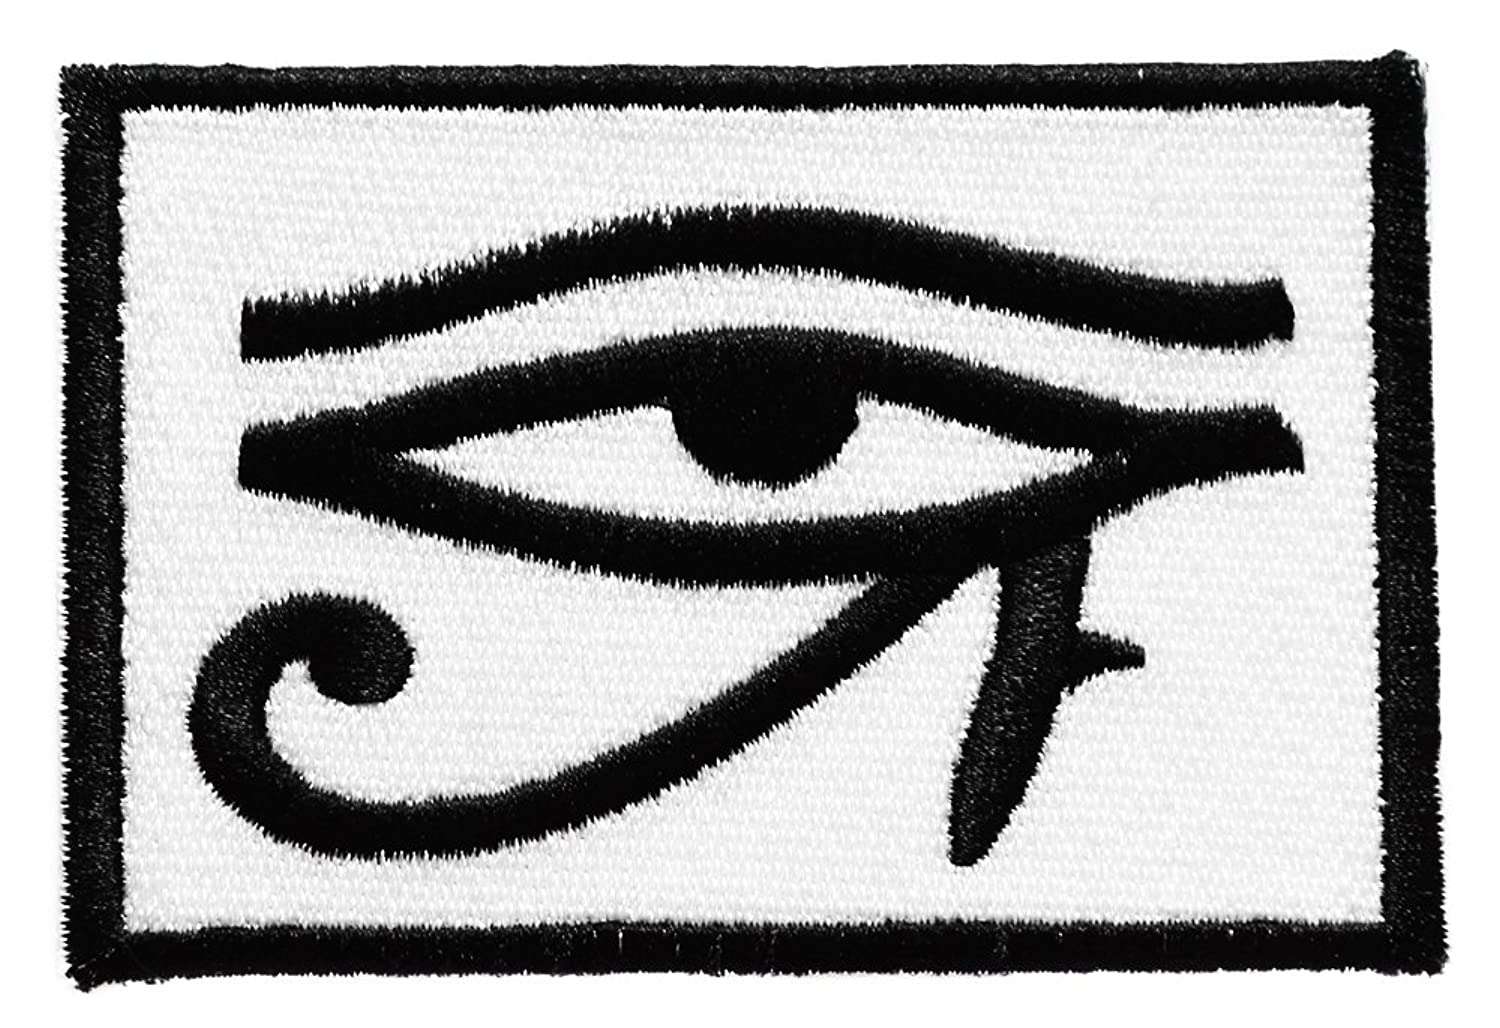 Horus Orus Egyptien Dieu Service Thermocollant Oeil Ecusson Durable YWEH9IeD2